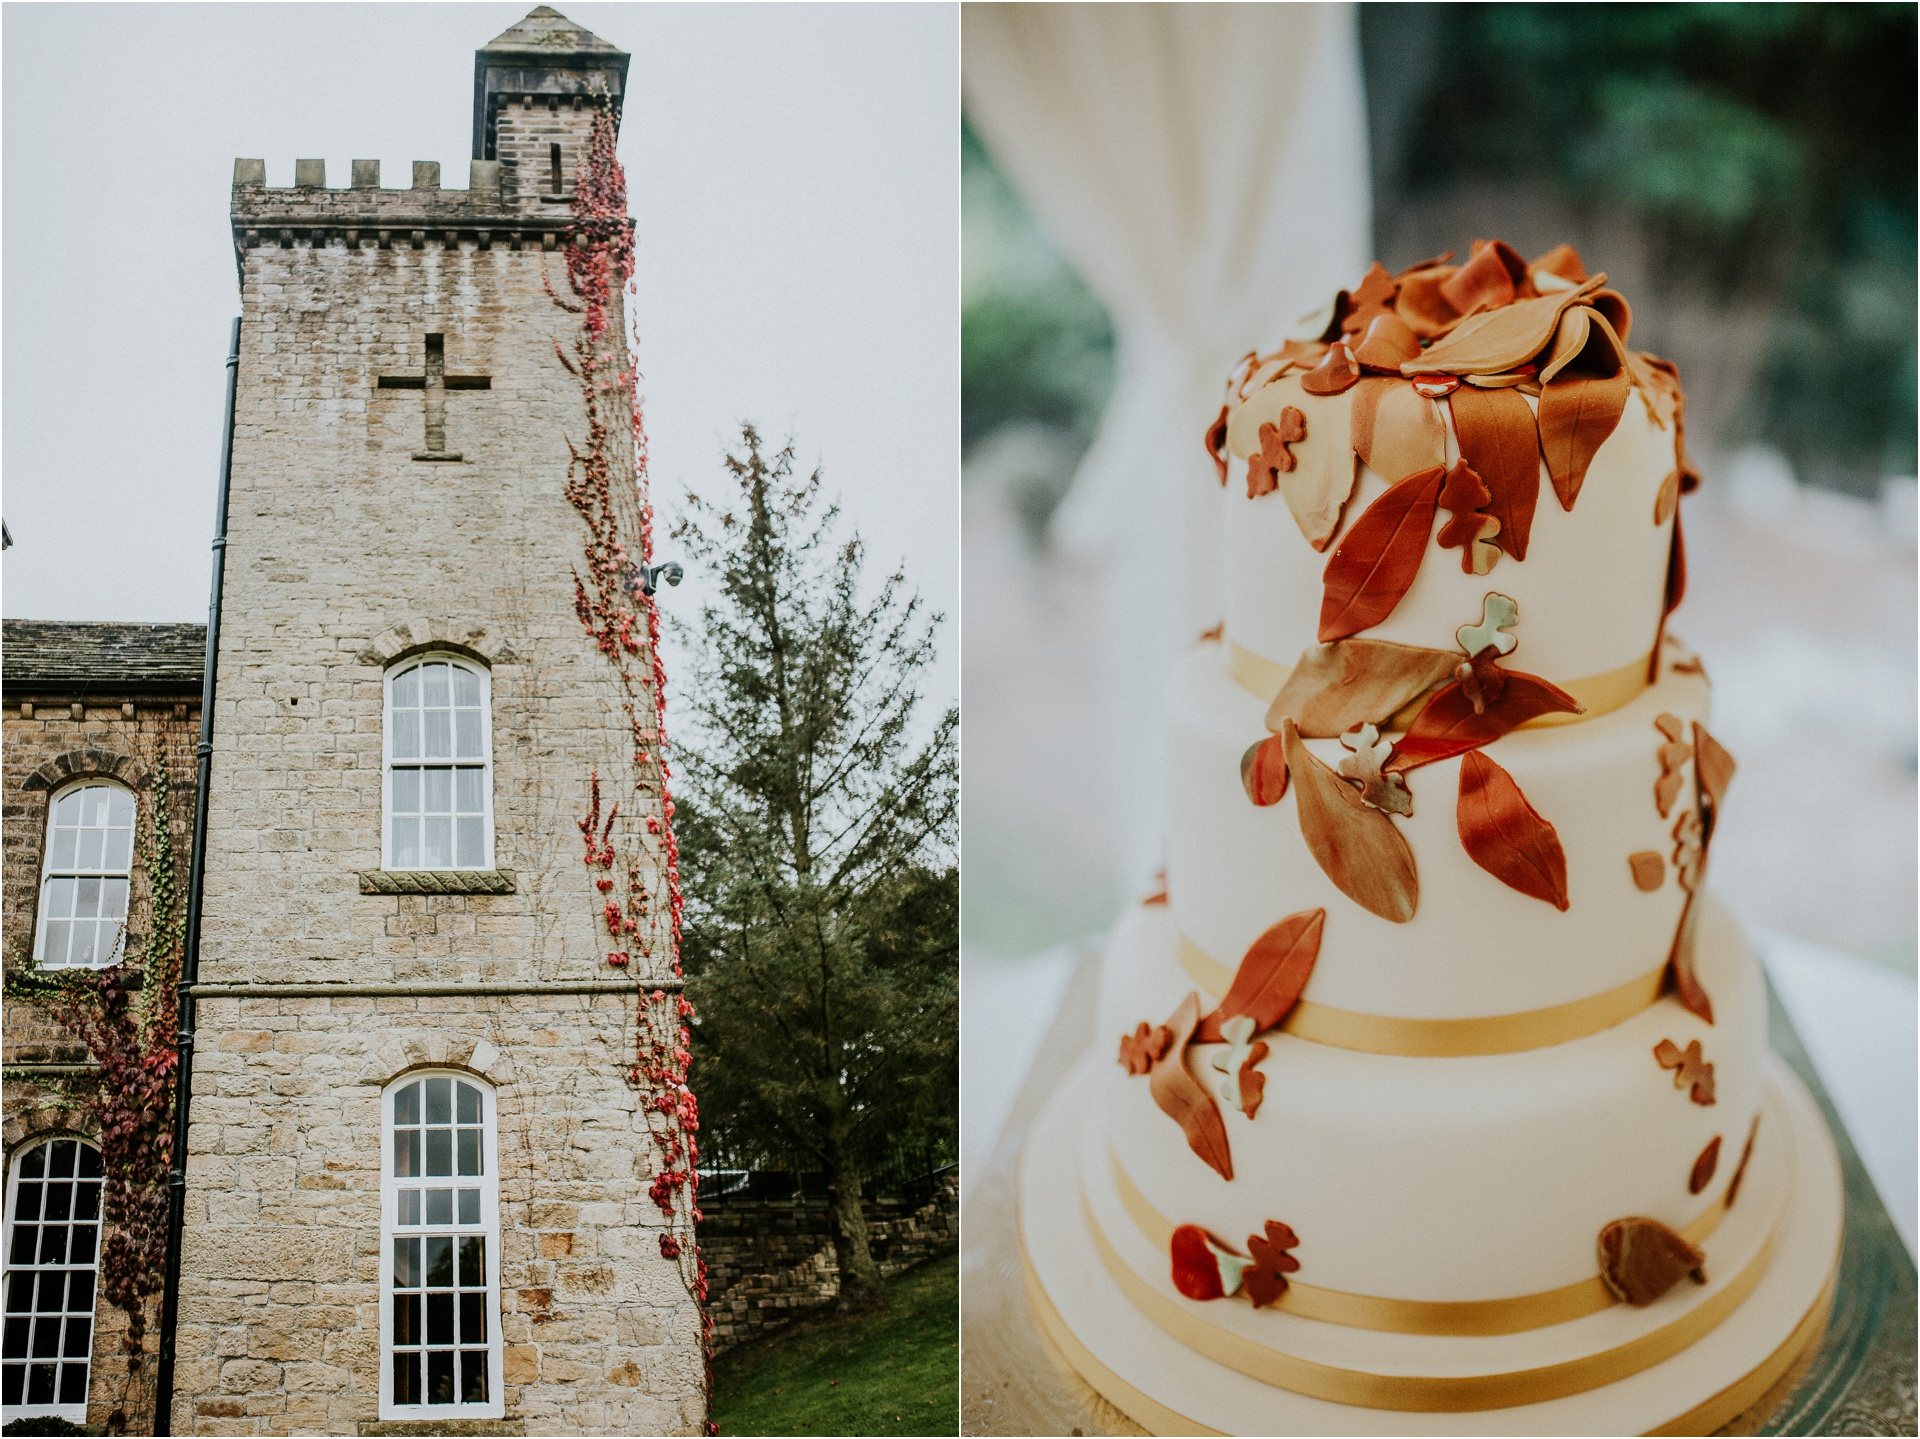 Beautiful same sex wedding at Carr Hall Castle in Yorkshire, castle, Carr Hall Castle,, Carr Hall Castle Wedding, Yorkshire Wedding photographer, same sex wedding photographer, wedding cake, autumn wedding